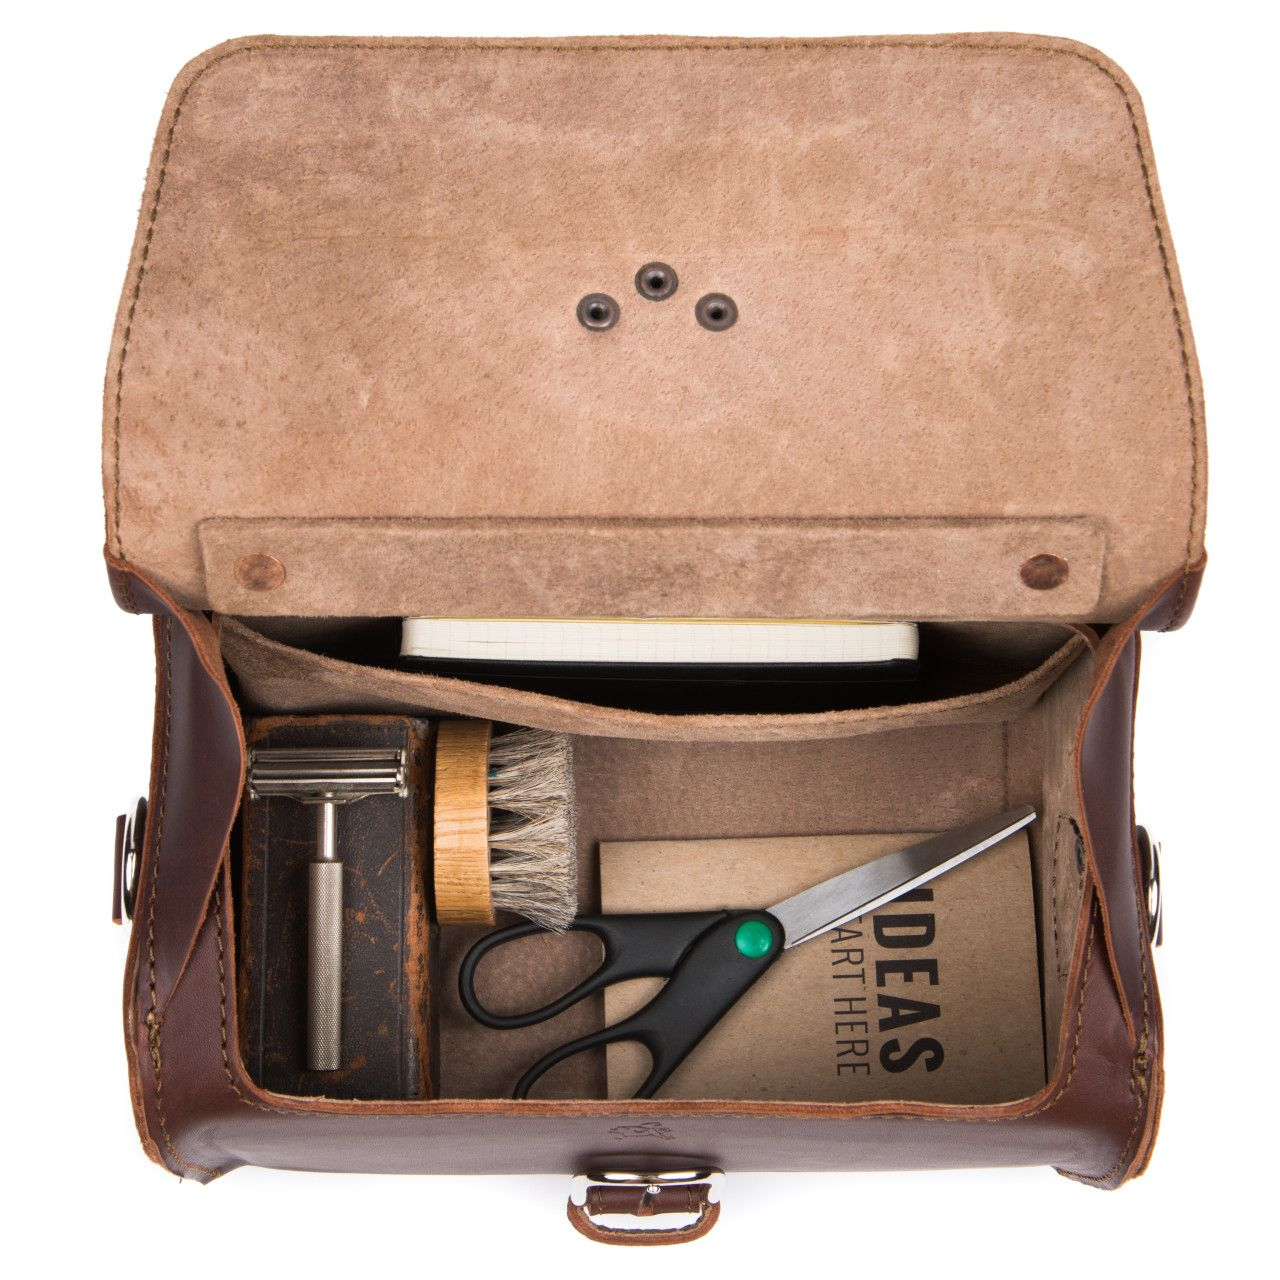 leather travel case medium in chestnut leather is great on the trip